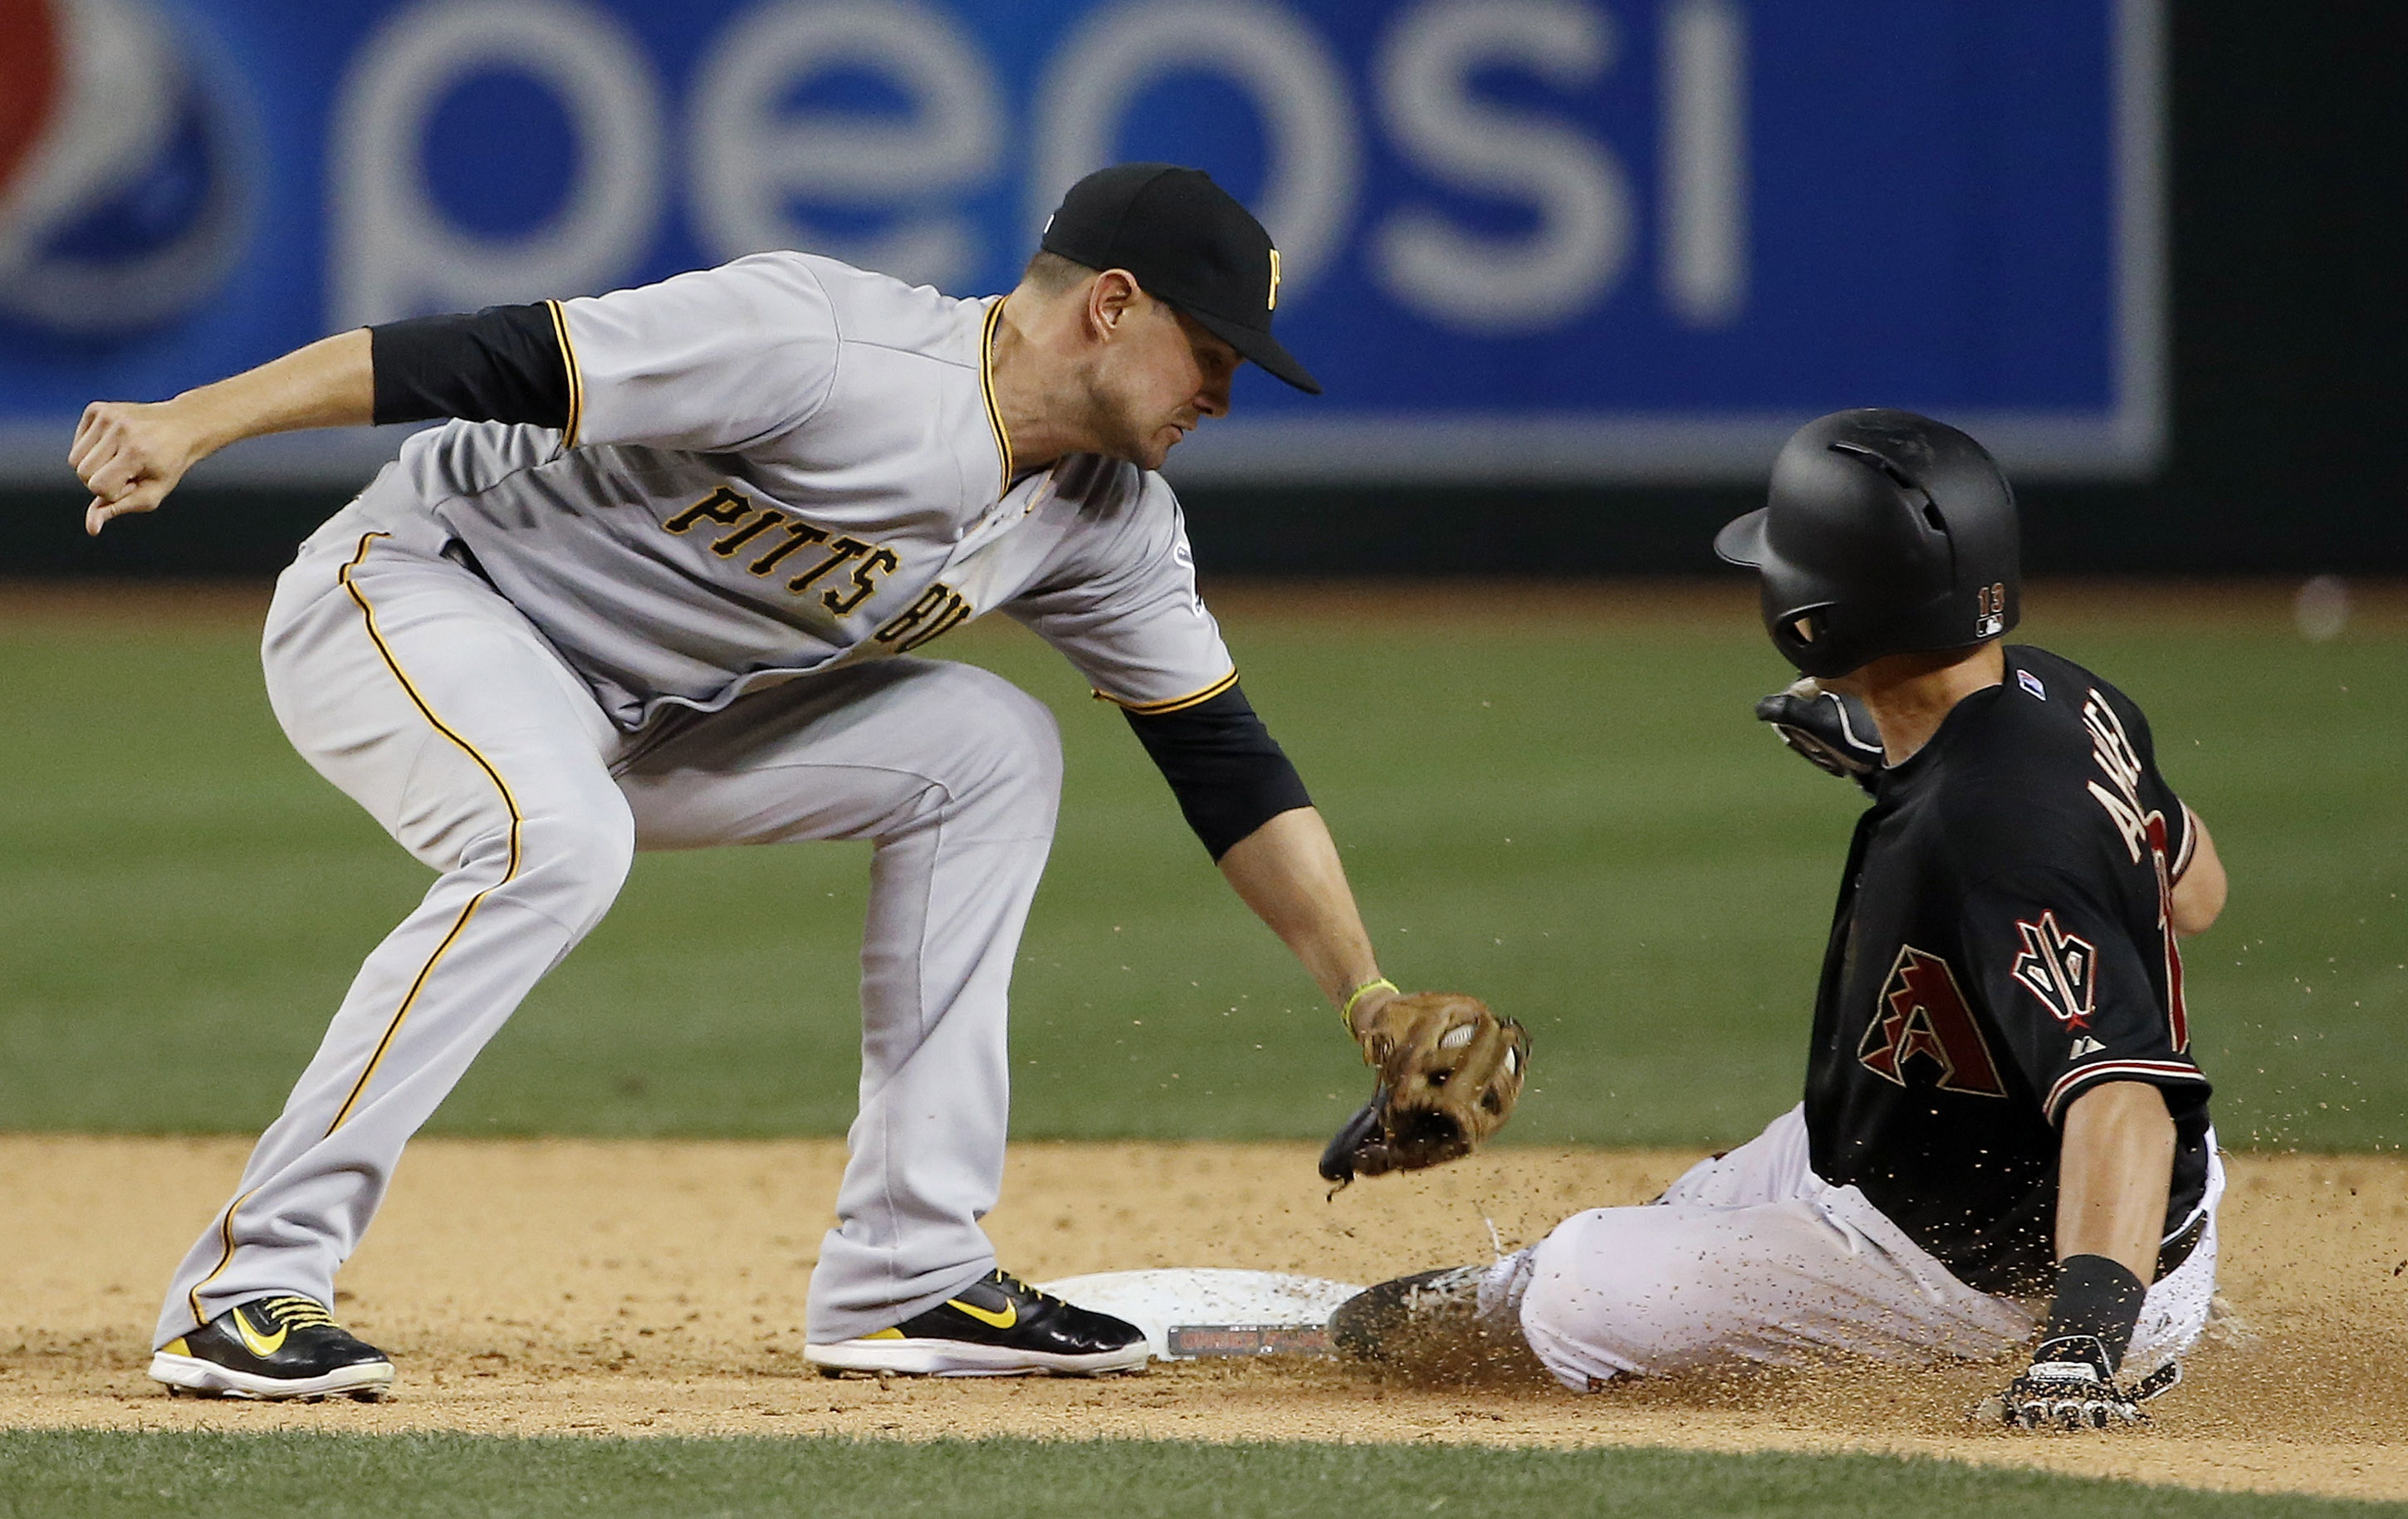 Pittsburgh Pirates' Jordy Mercer, left, tags out Arizona Diamondbacks' Nick Ahmed, right, as he tries to steal second base during the ninth inning of a baseball game Saturday, April 25, 2015, in Phoenix. The Pirates defeated the Diamondbacks 2-1. (AP Phot